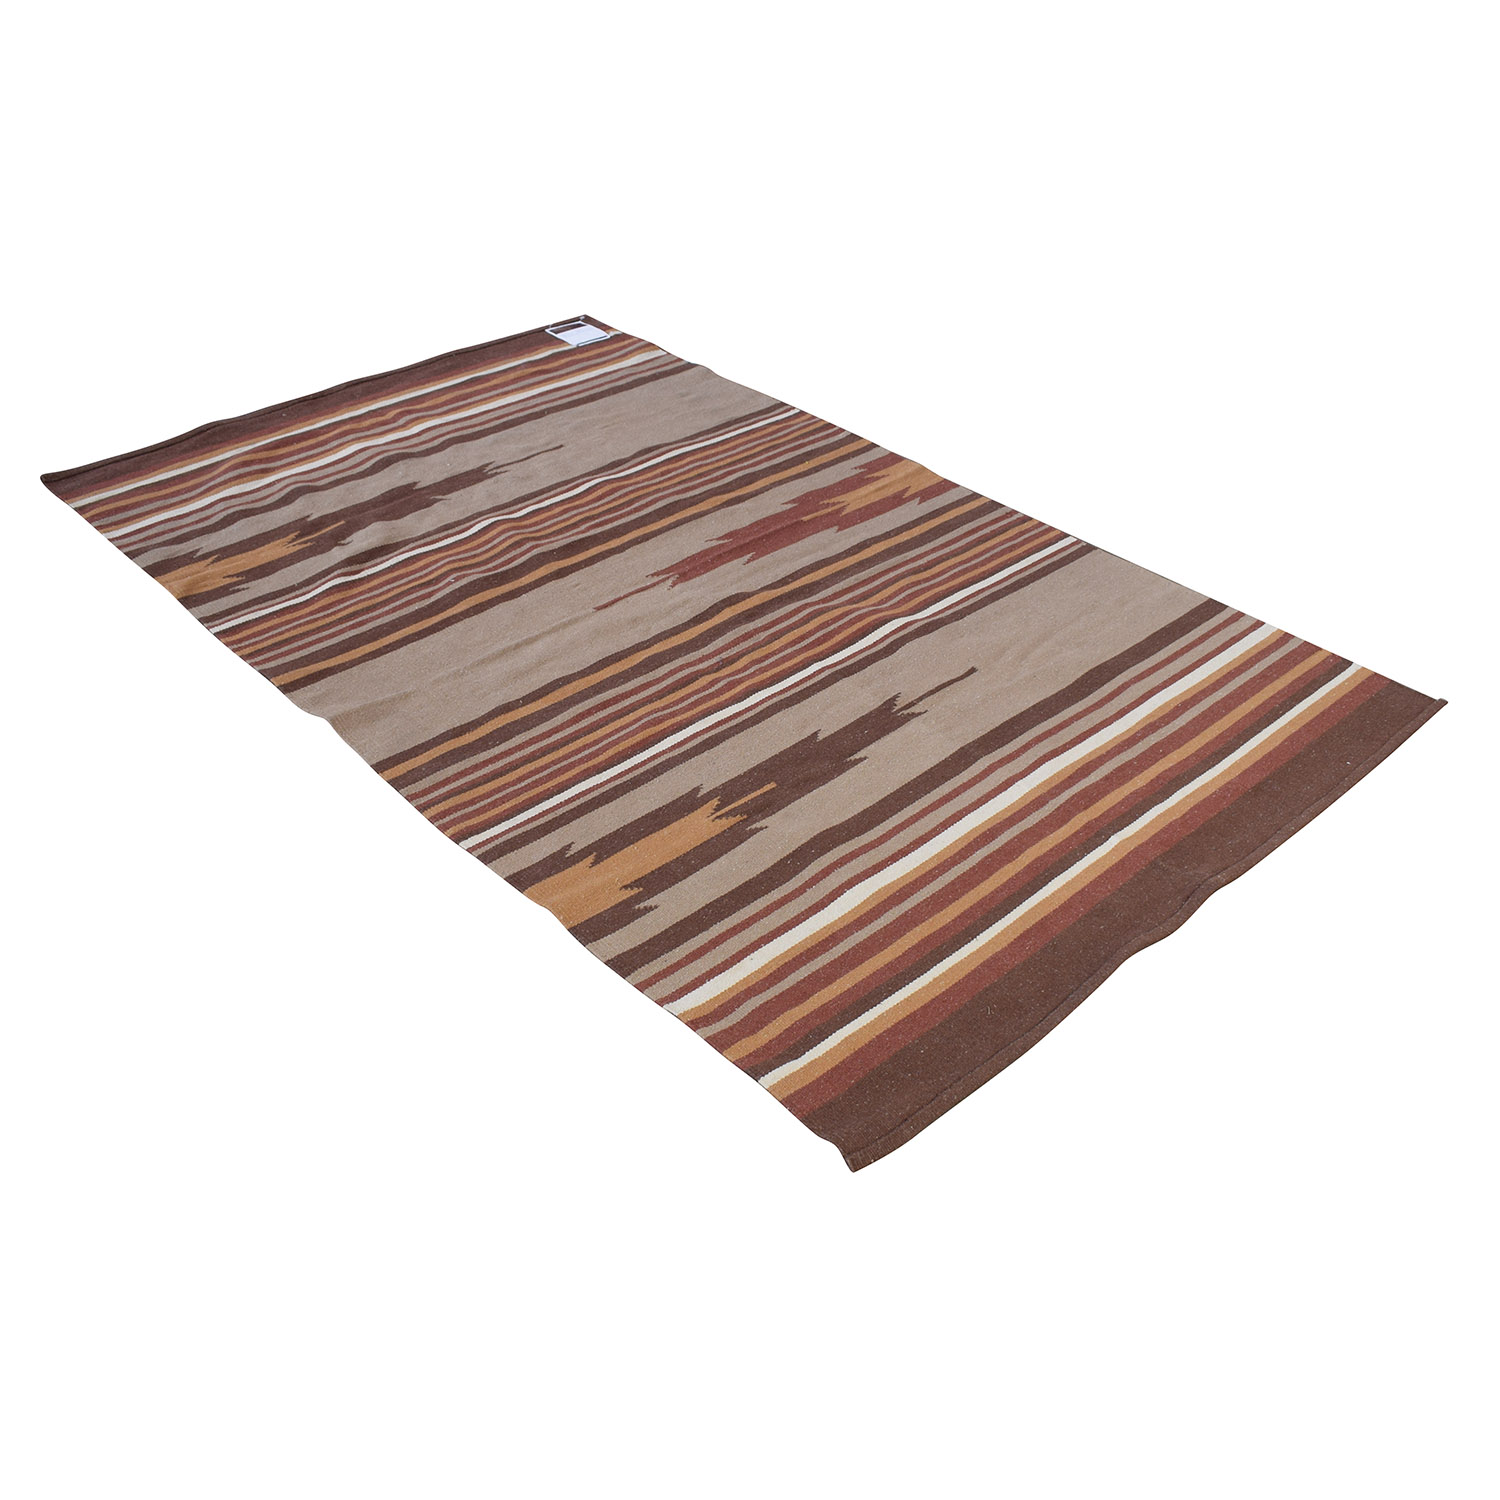 Obeetee Obeetee Red Striped Dhurrie Weave Rug coupon